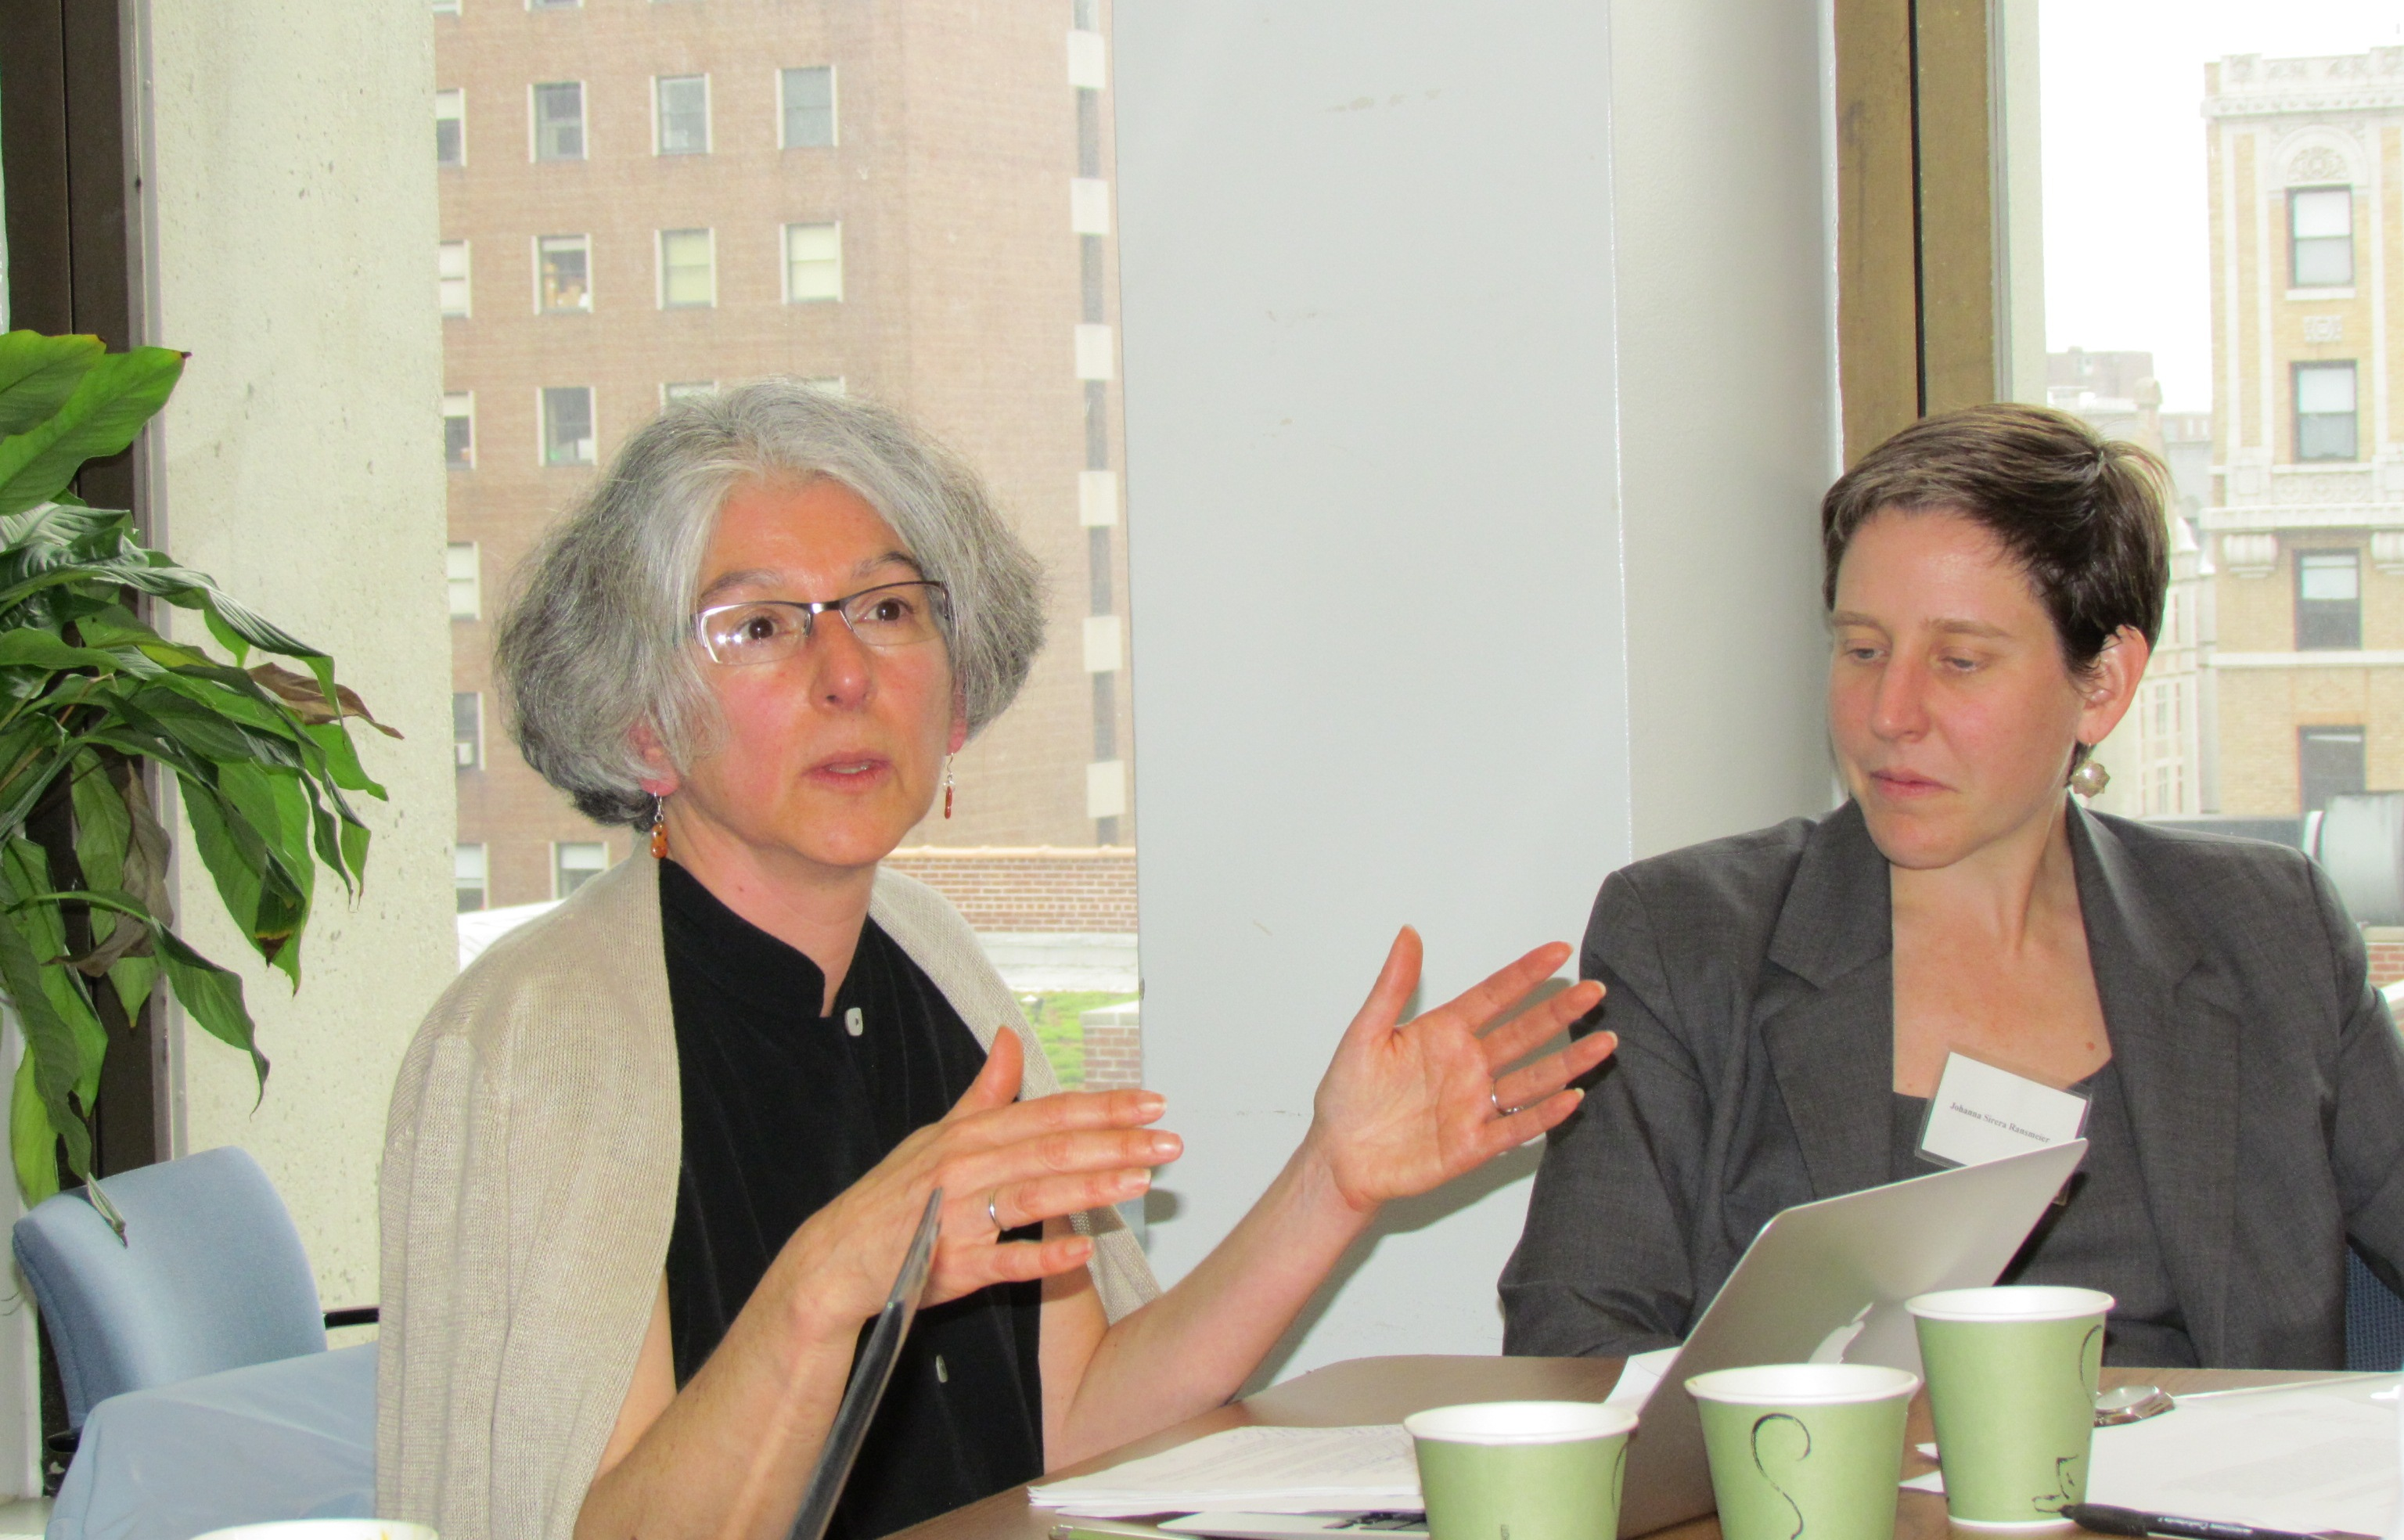 Bryna Goodman speaking at Columbia in May 2012, Johanna Ransmeier to the right.